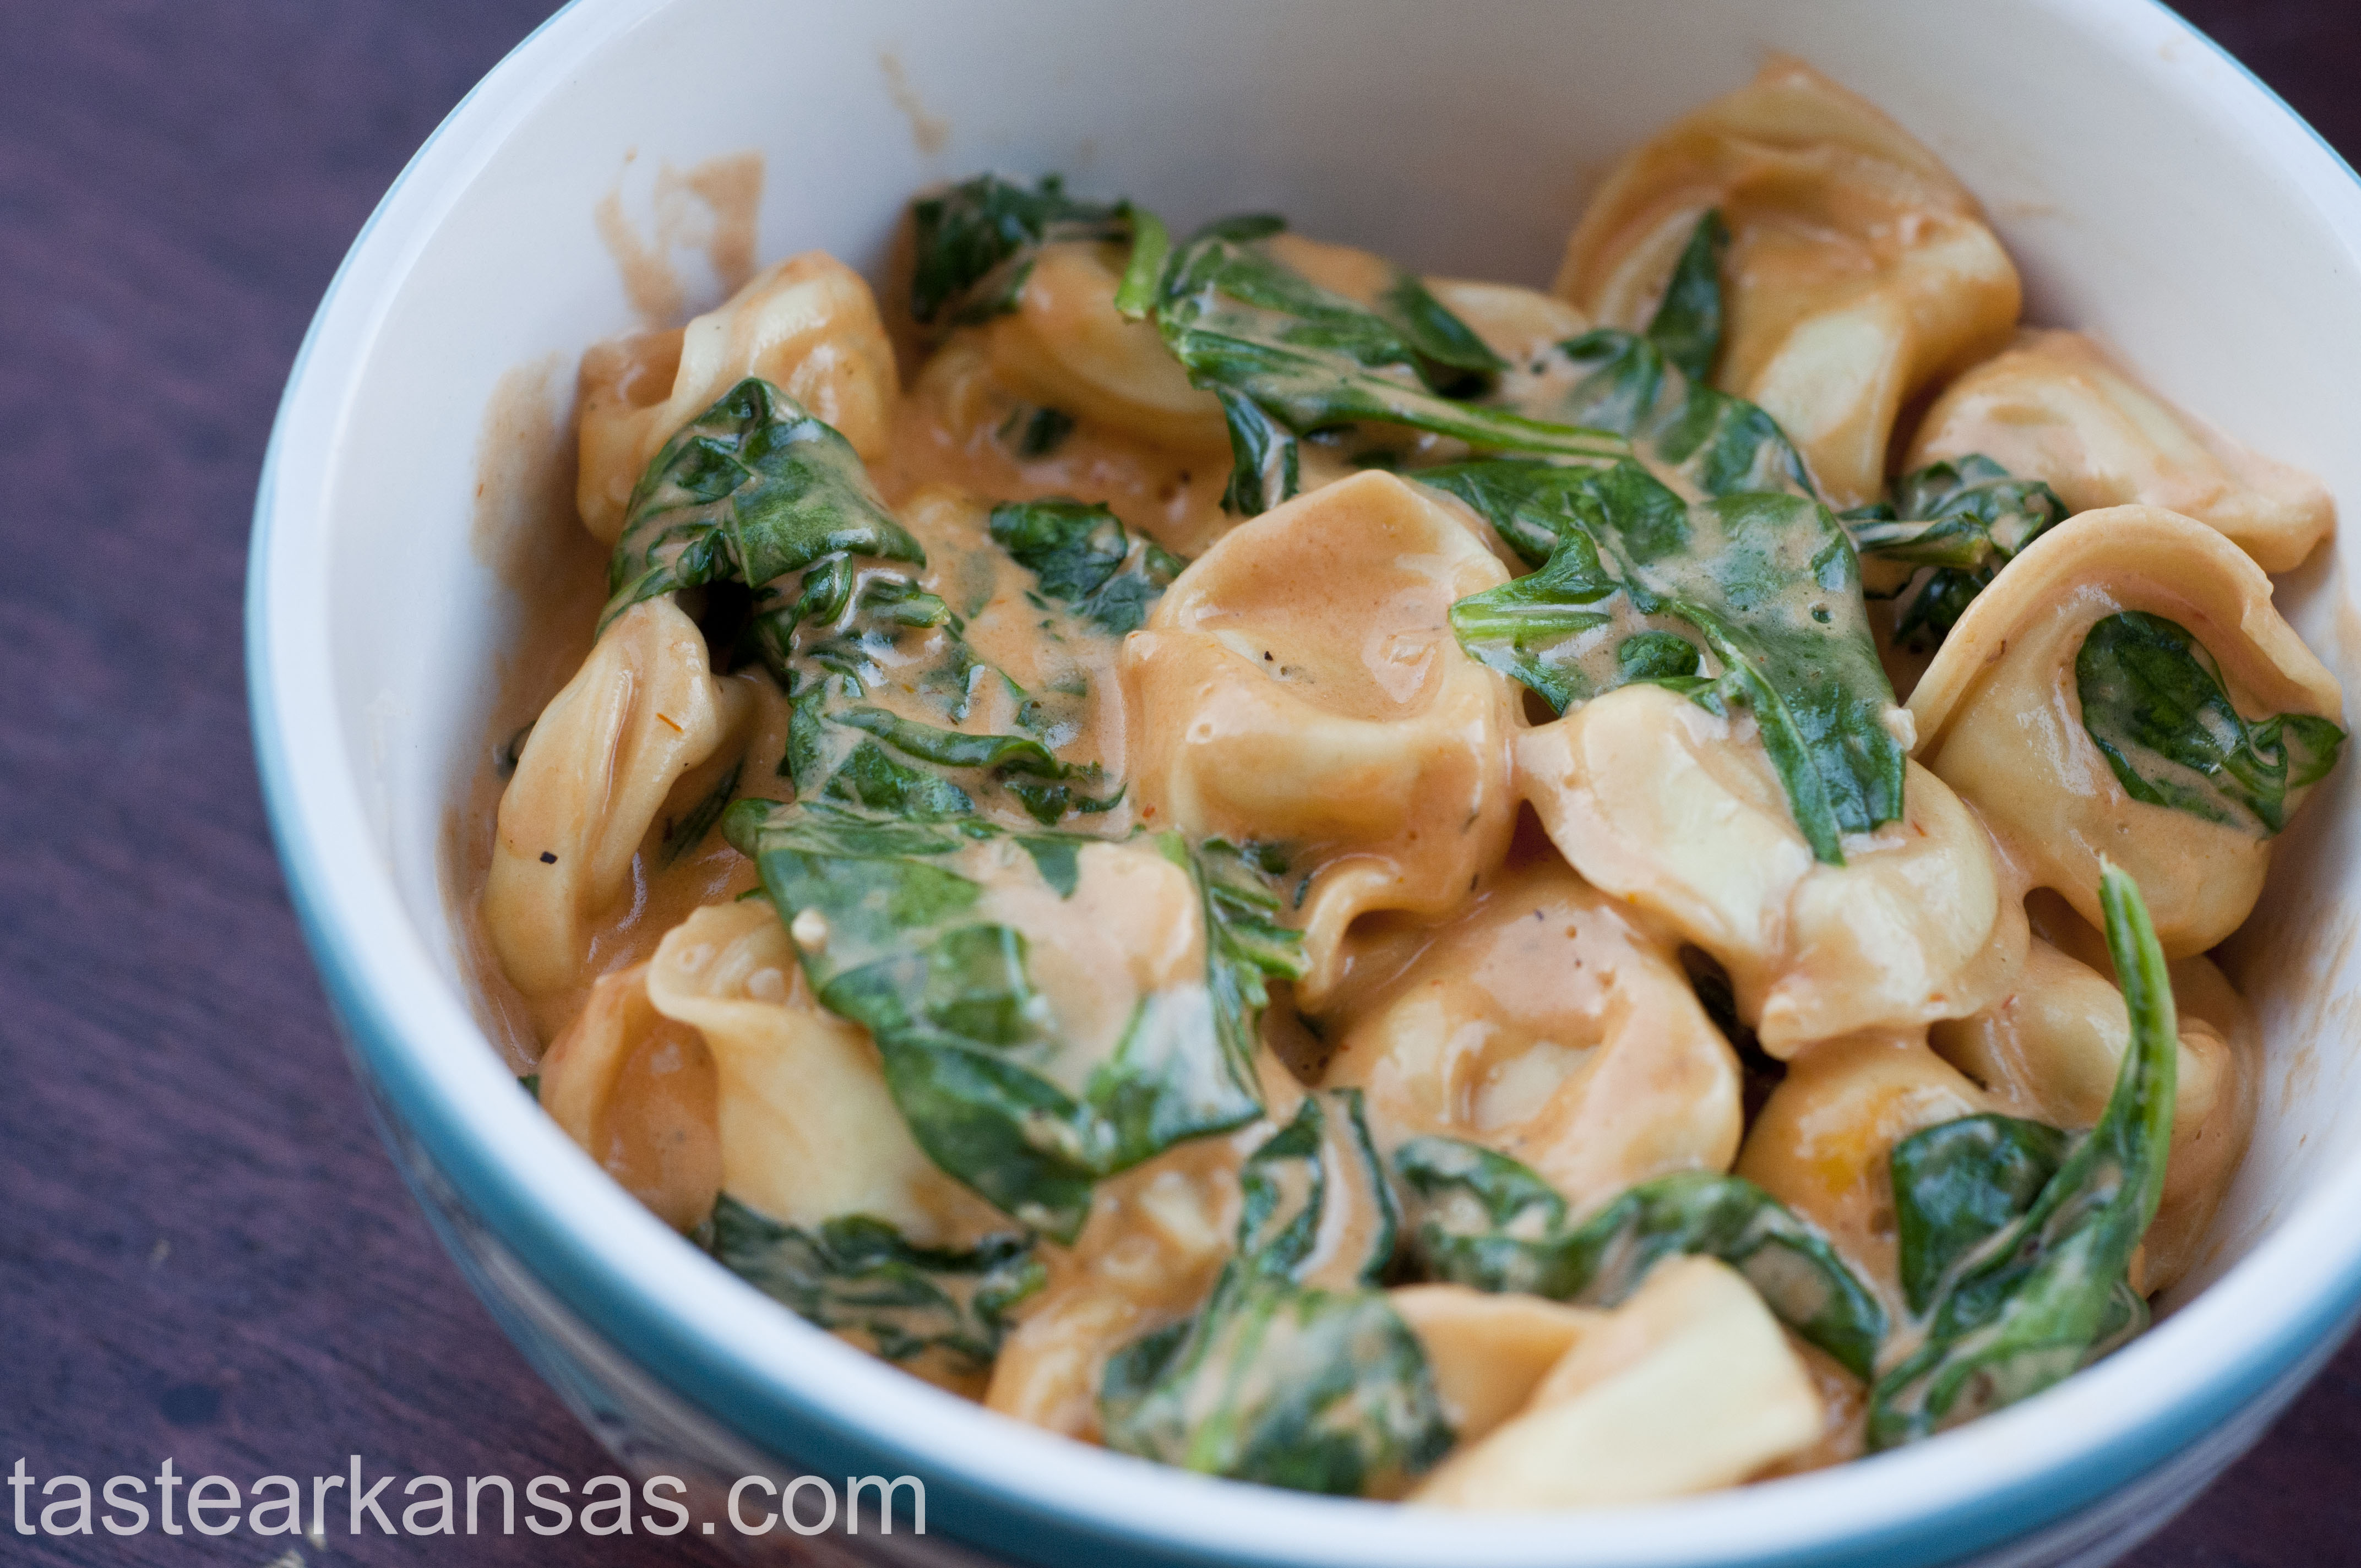 Garlic Tomato Cream Sauce with Tortellini and Spinach